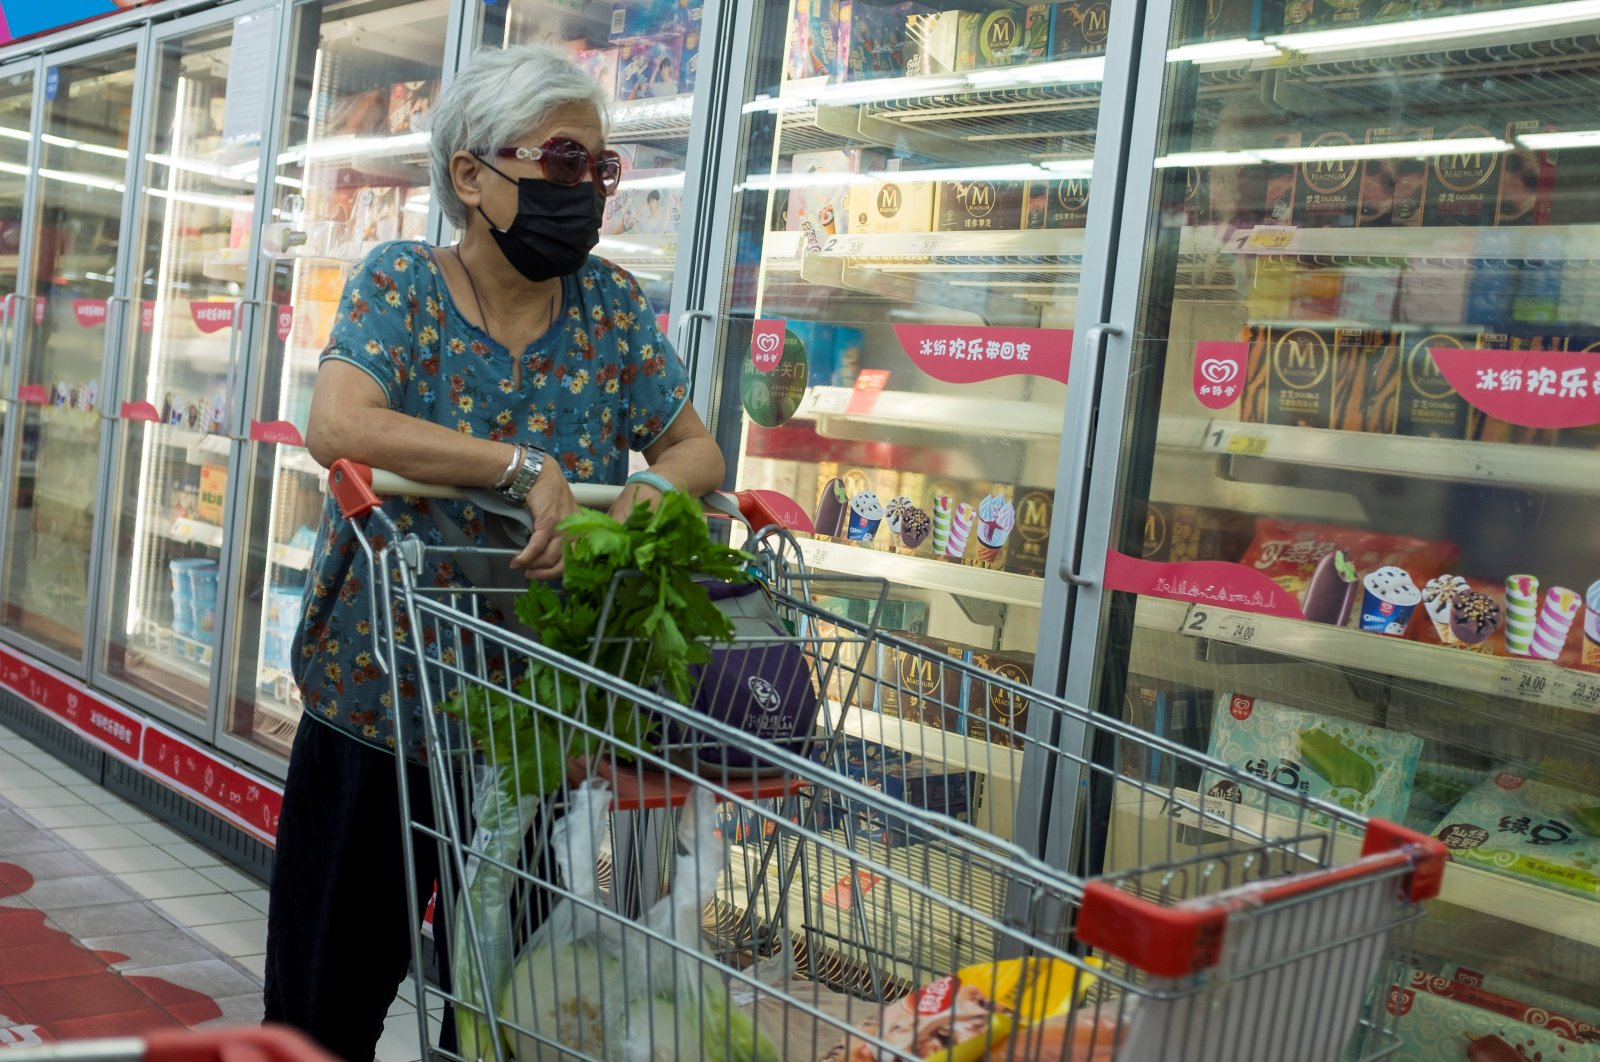 A woman looks at frozen food products in a supermarket in Beijing, China, August 13, 2020. (REUTERS Photo)